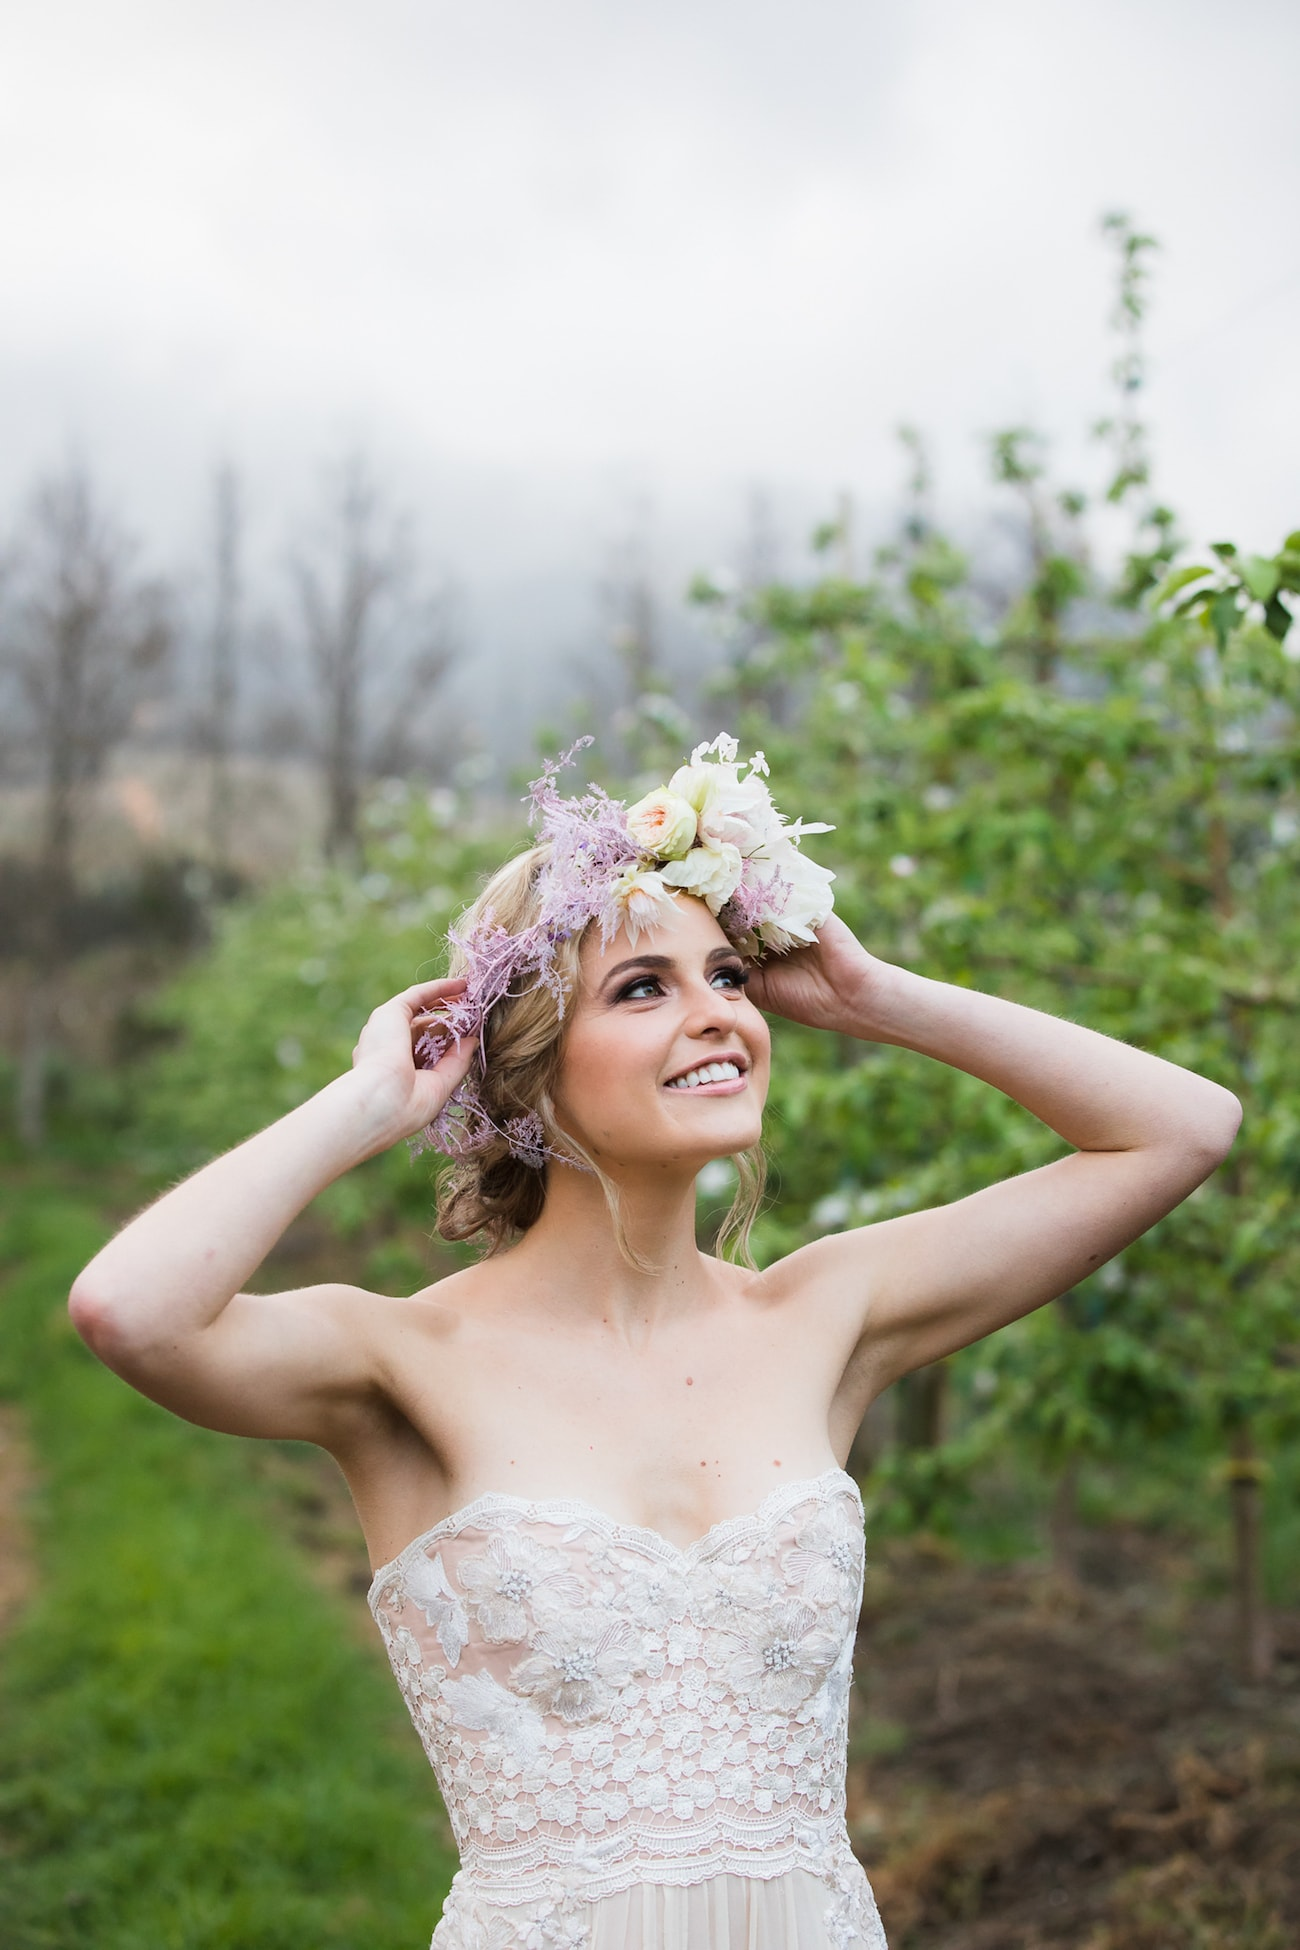 Spring Bride in Alana van Heerden Wedding Dress | Image: Sulet Fourie